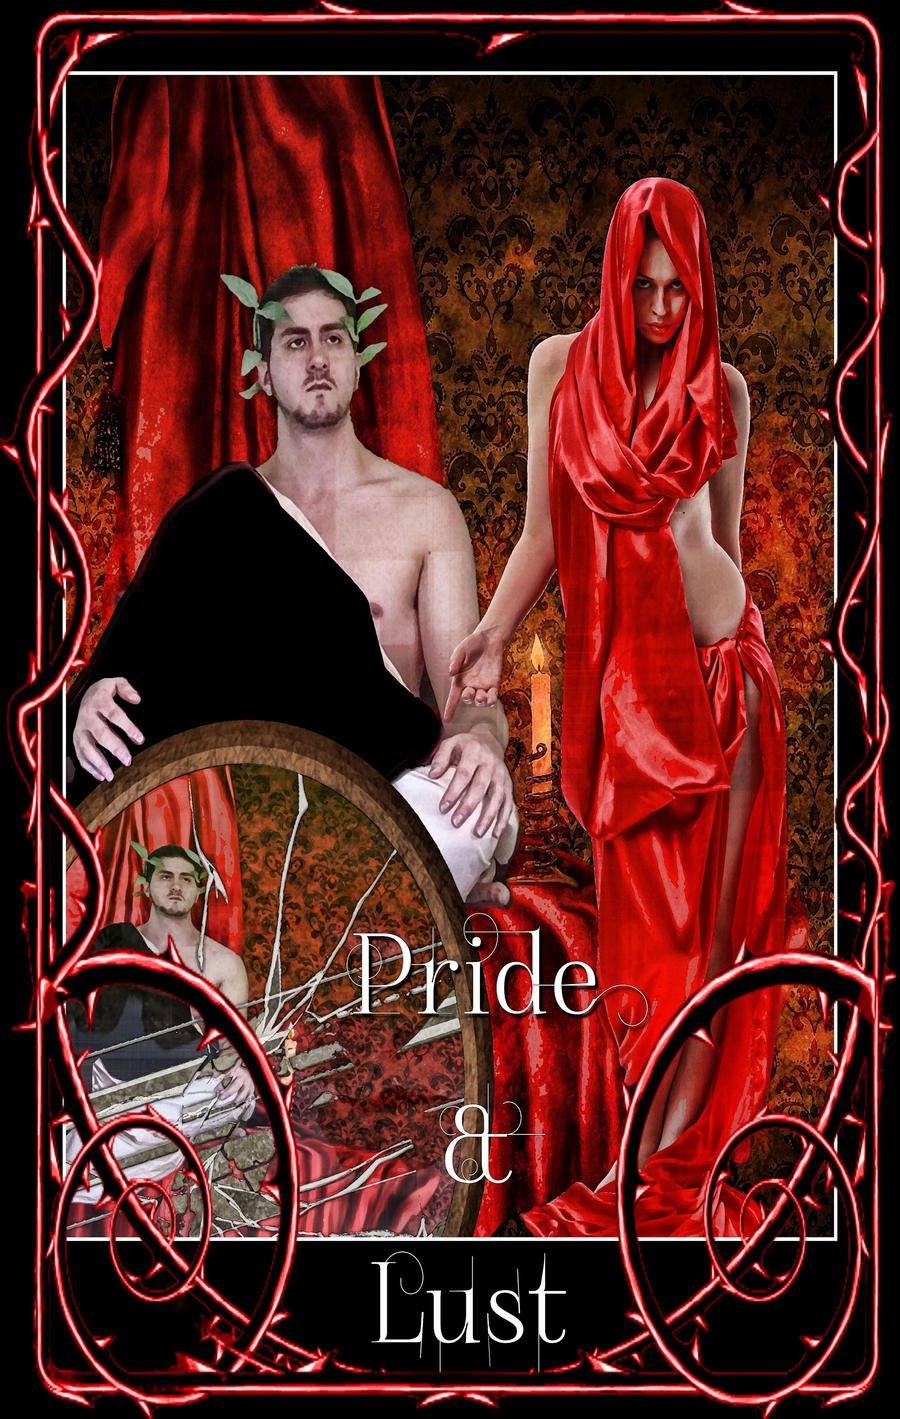 Pride begins with a image,lust with a sensation.